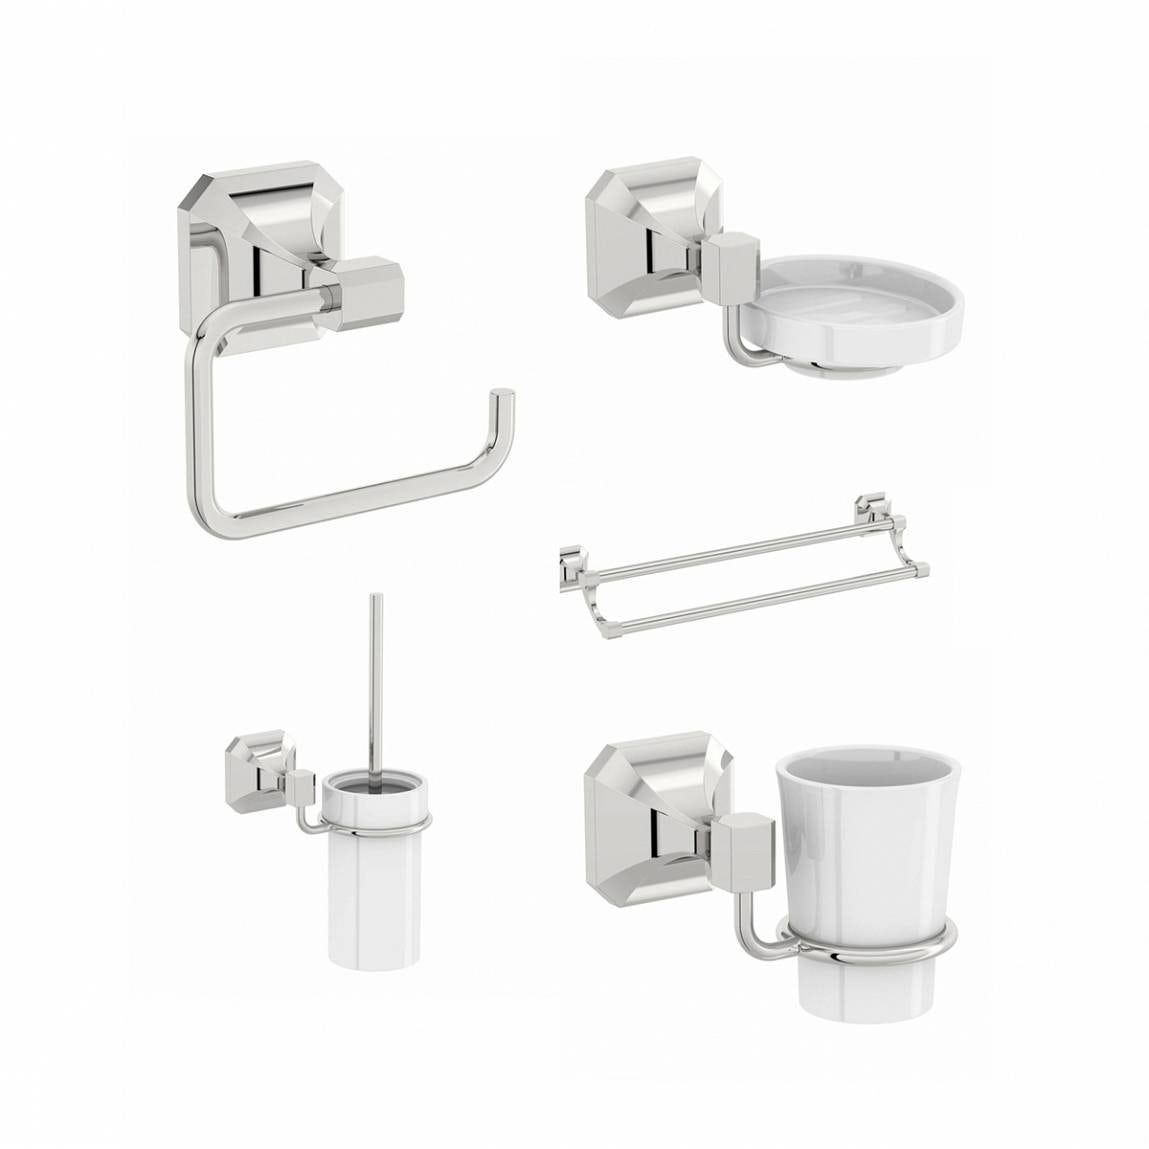 The Bath Co. Camberley family bathroom accessory set